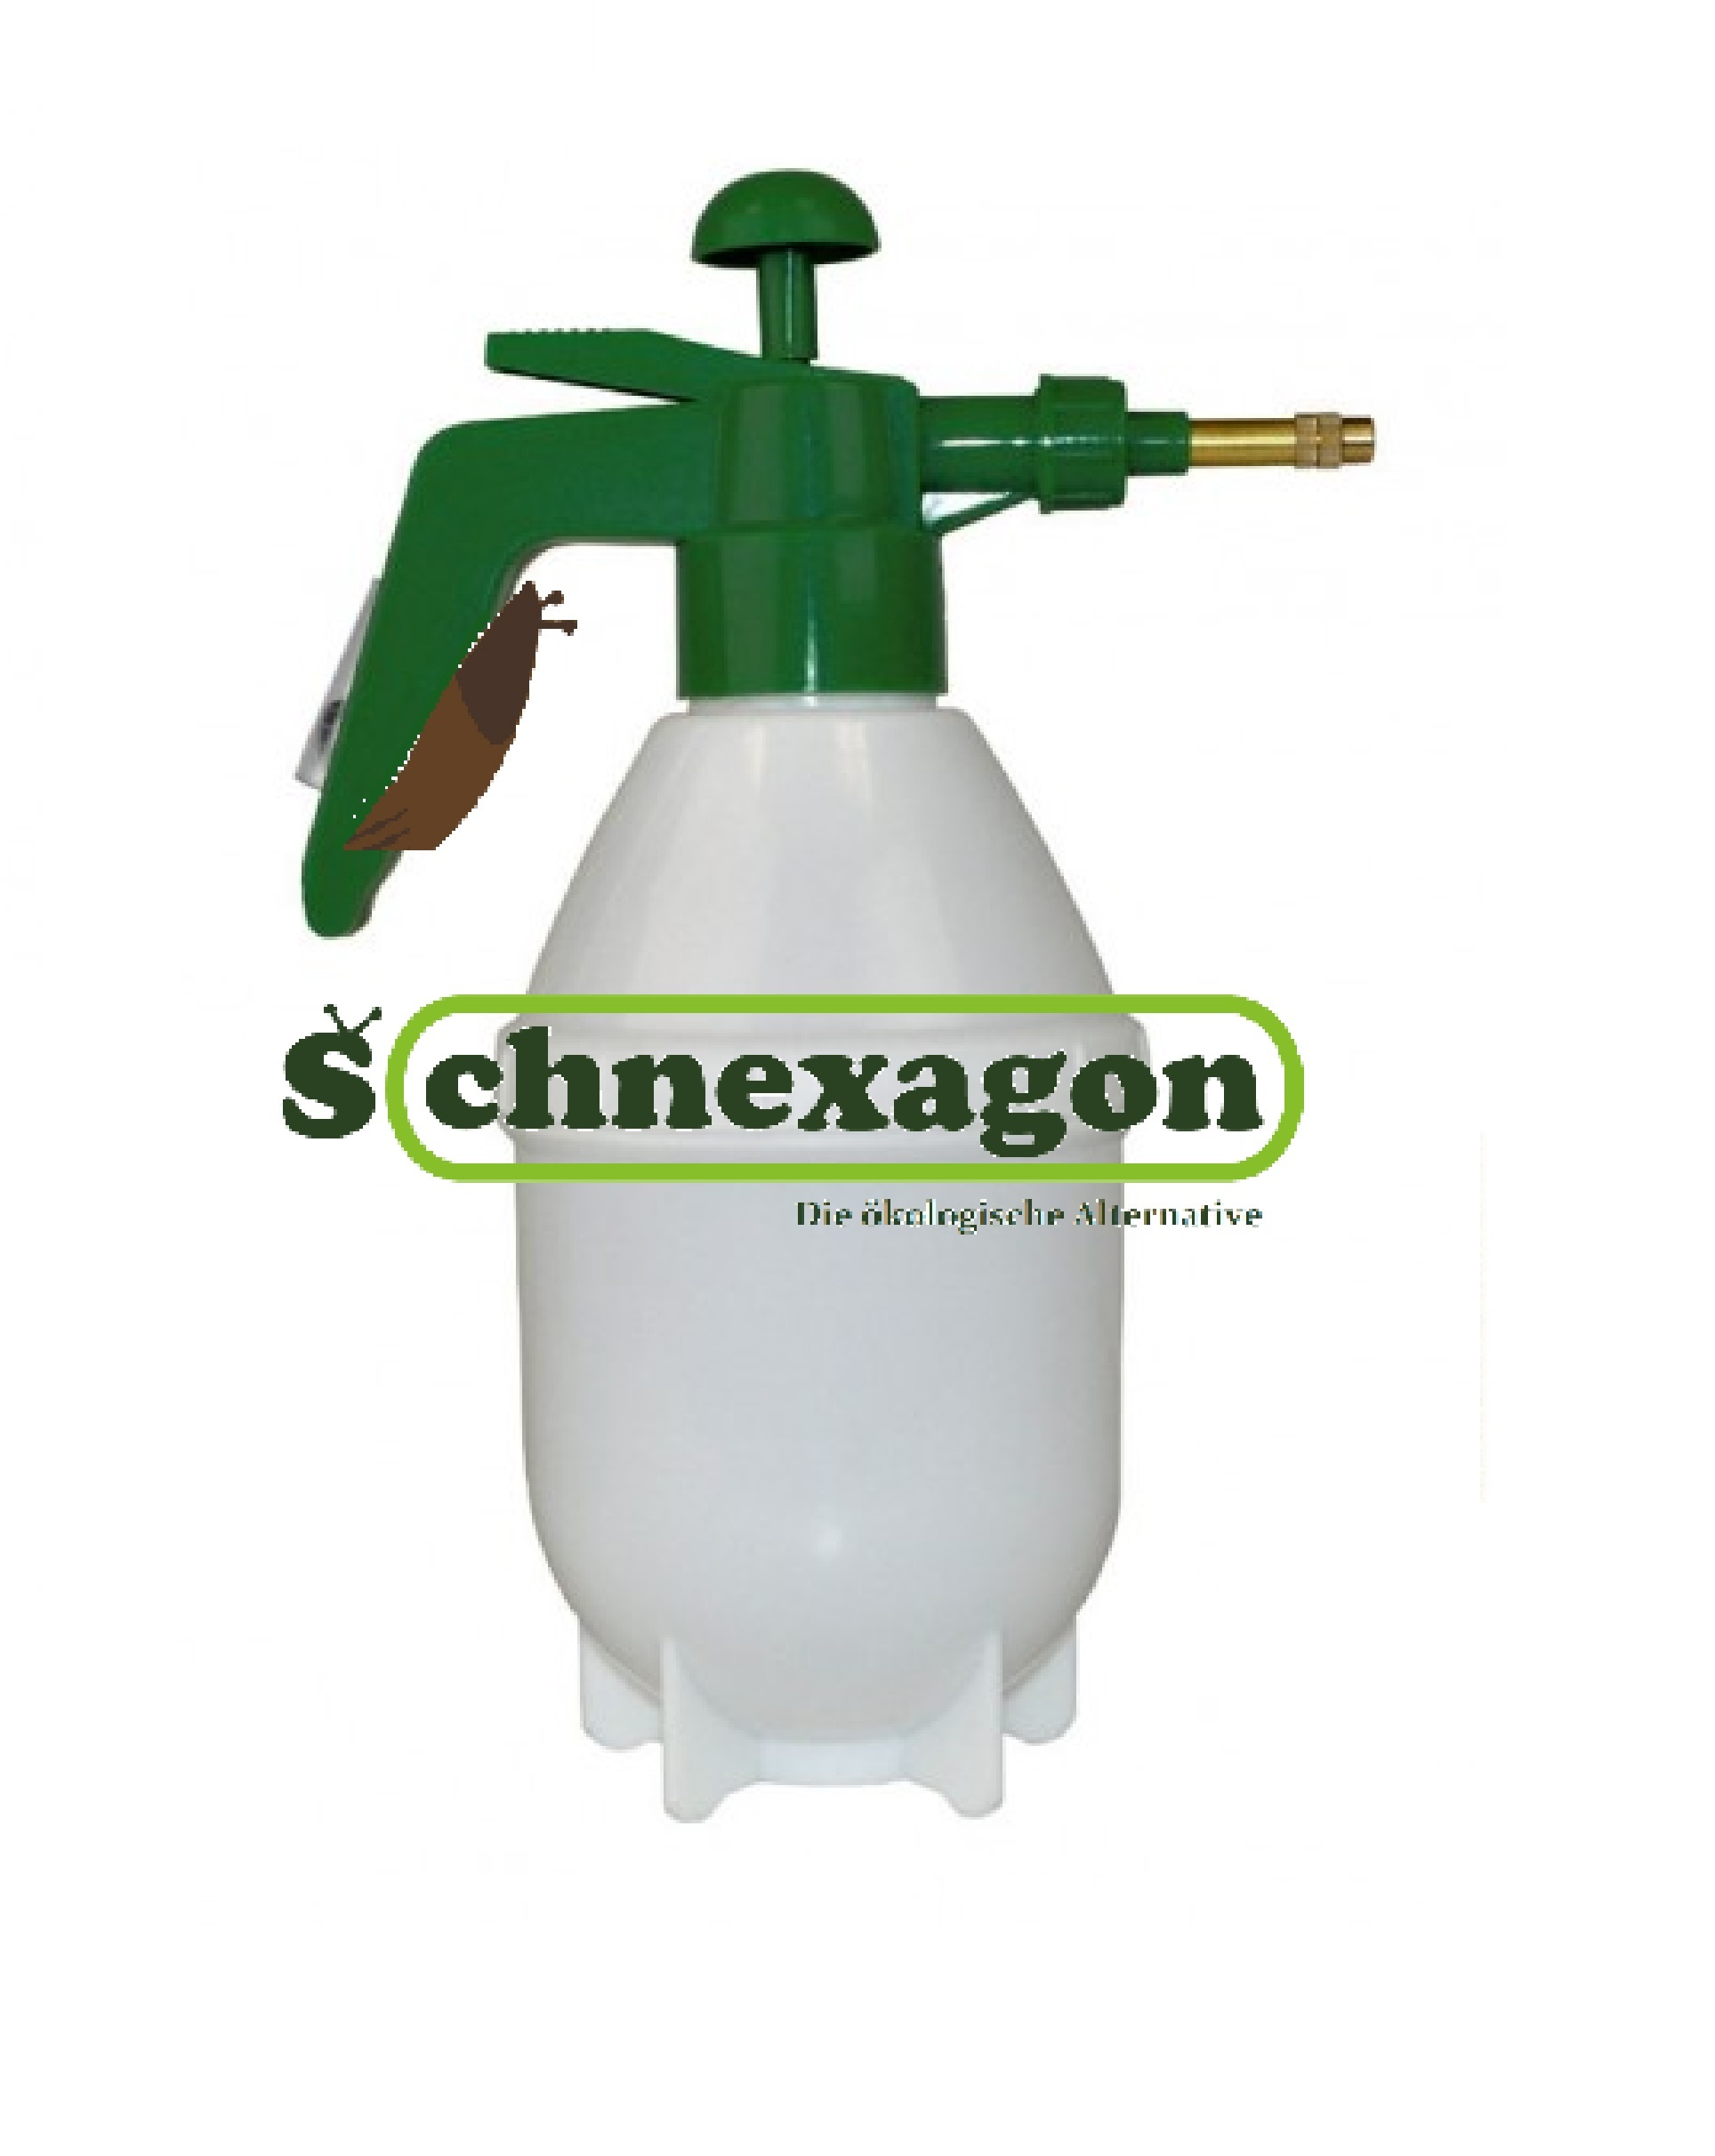 Schnex_Spray_0001.jpg